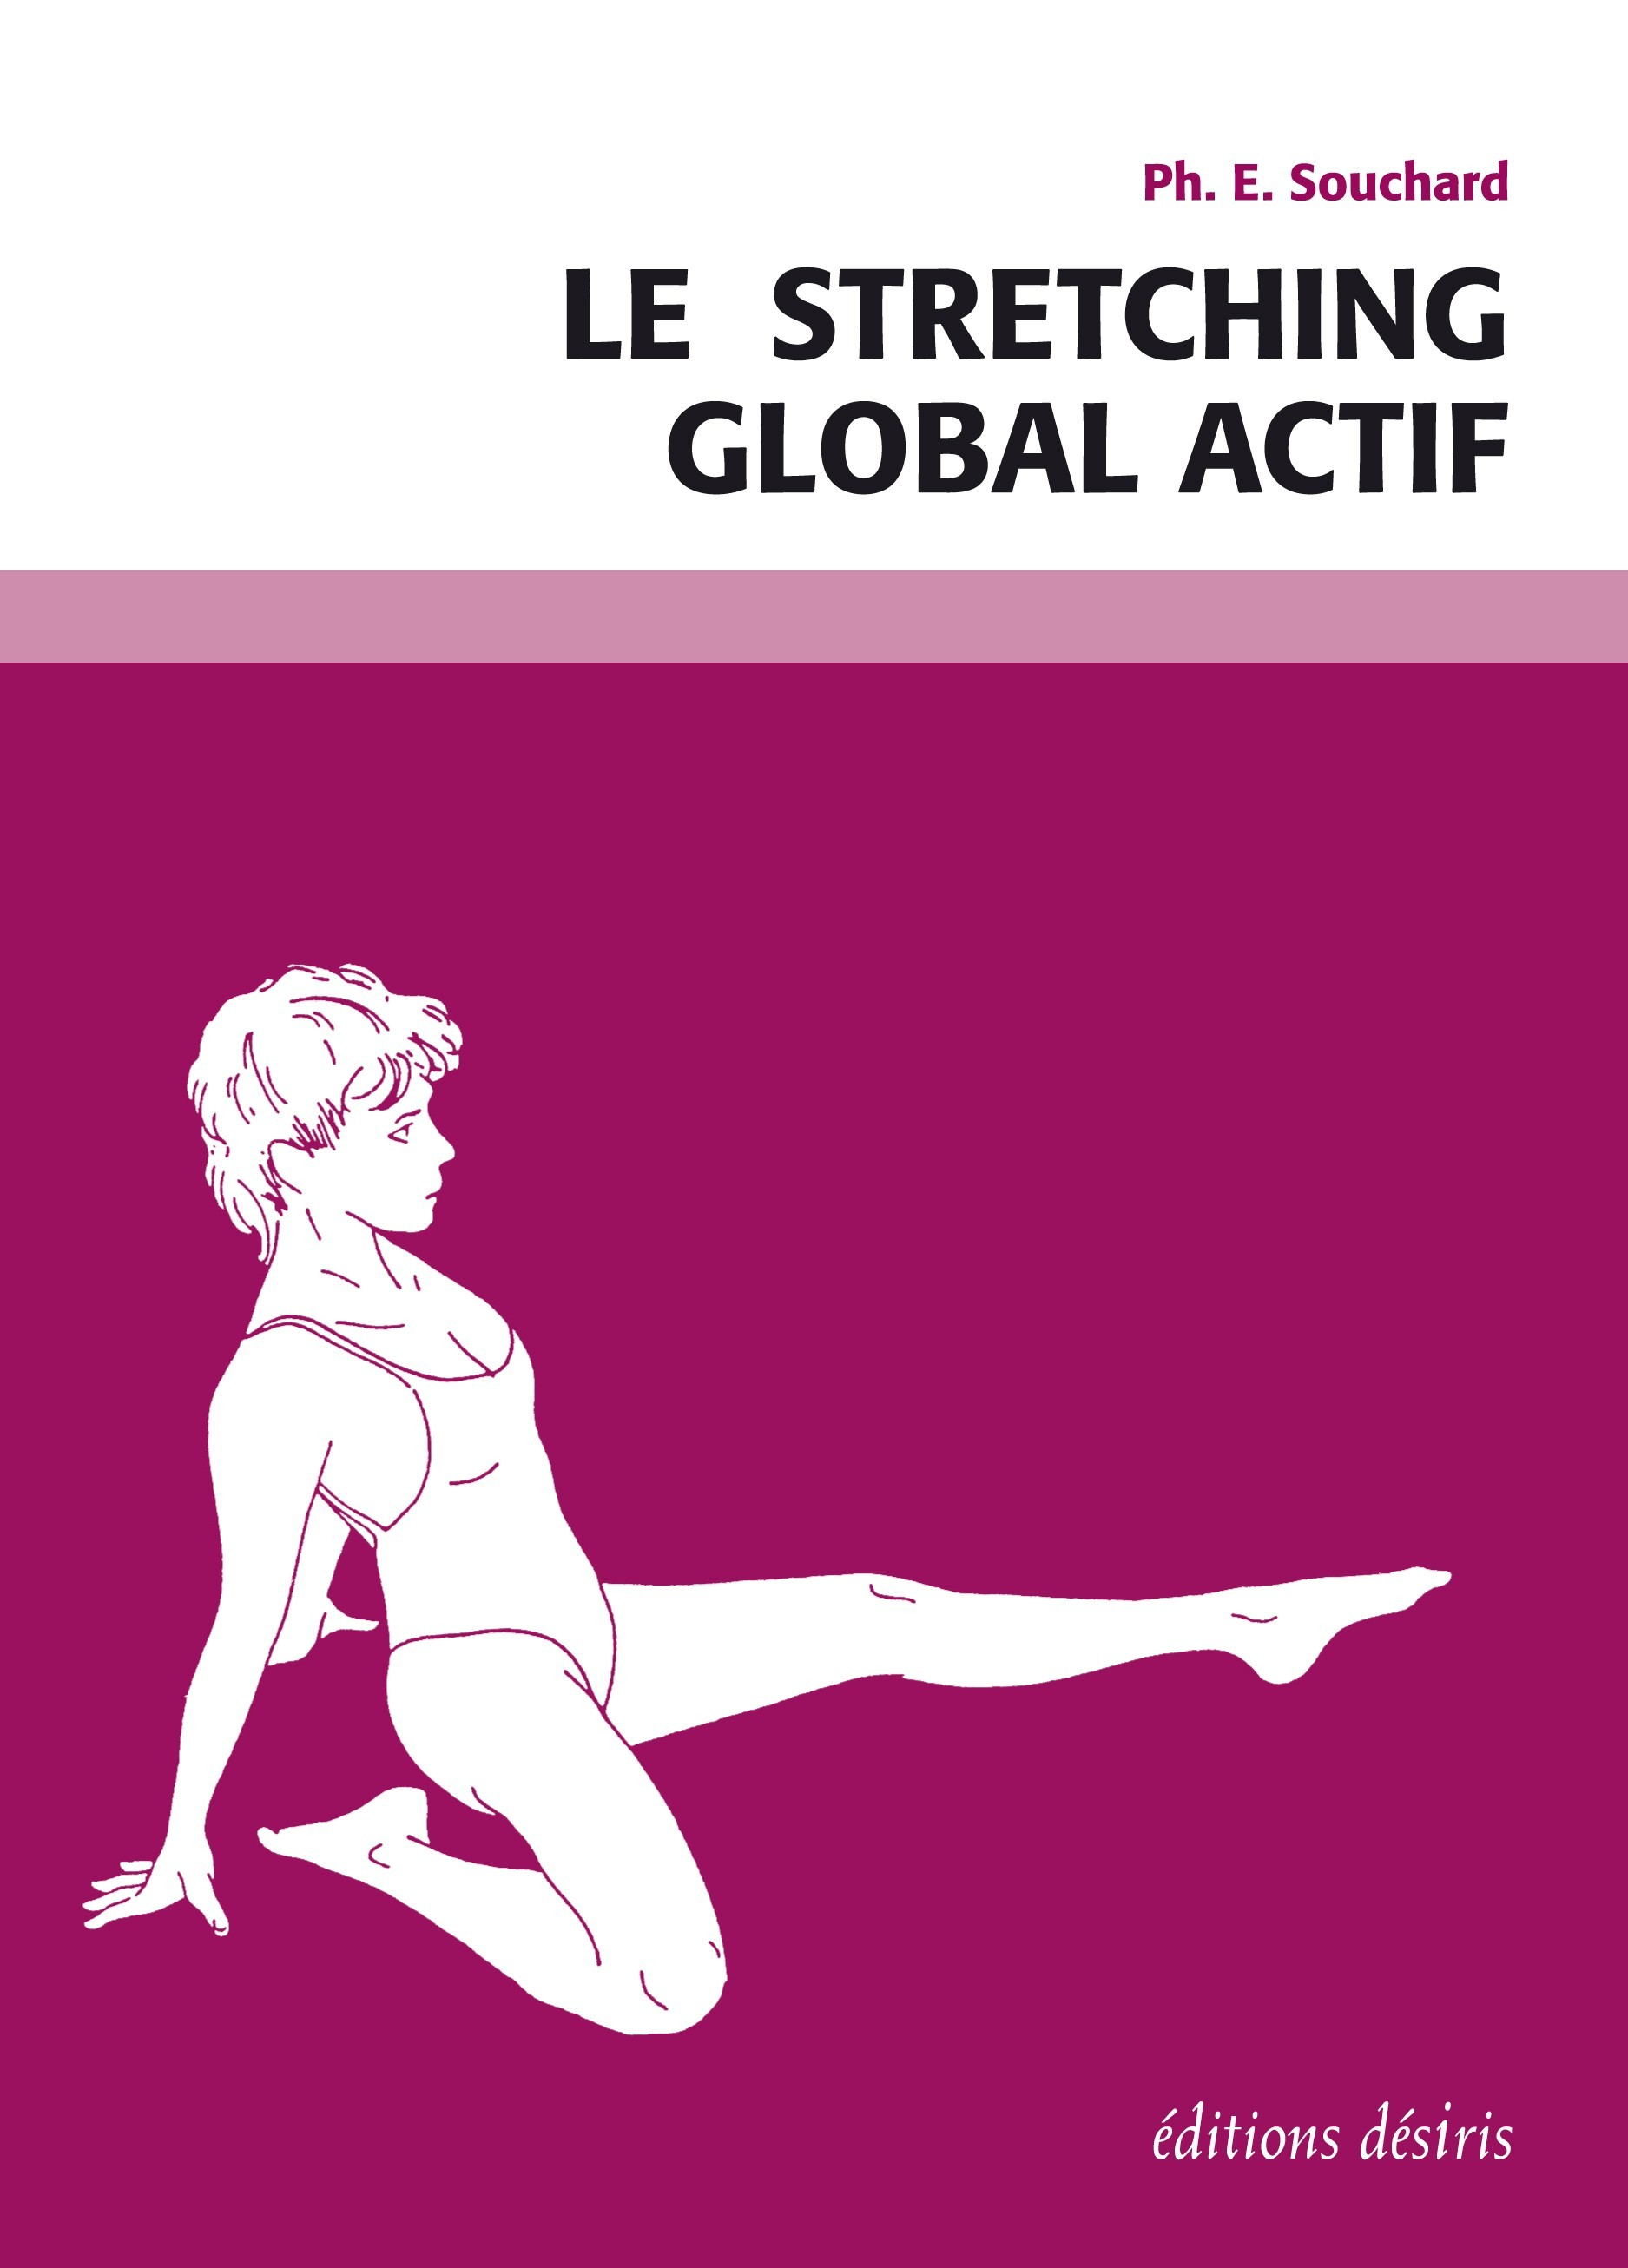 LE STRETCHING GLOBAL ACTIF